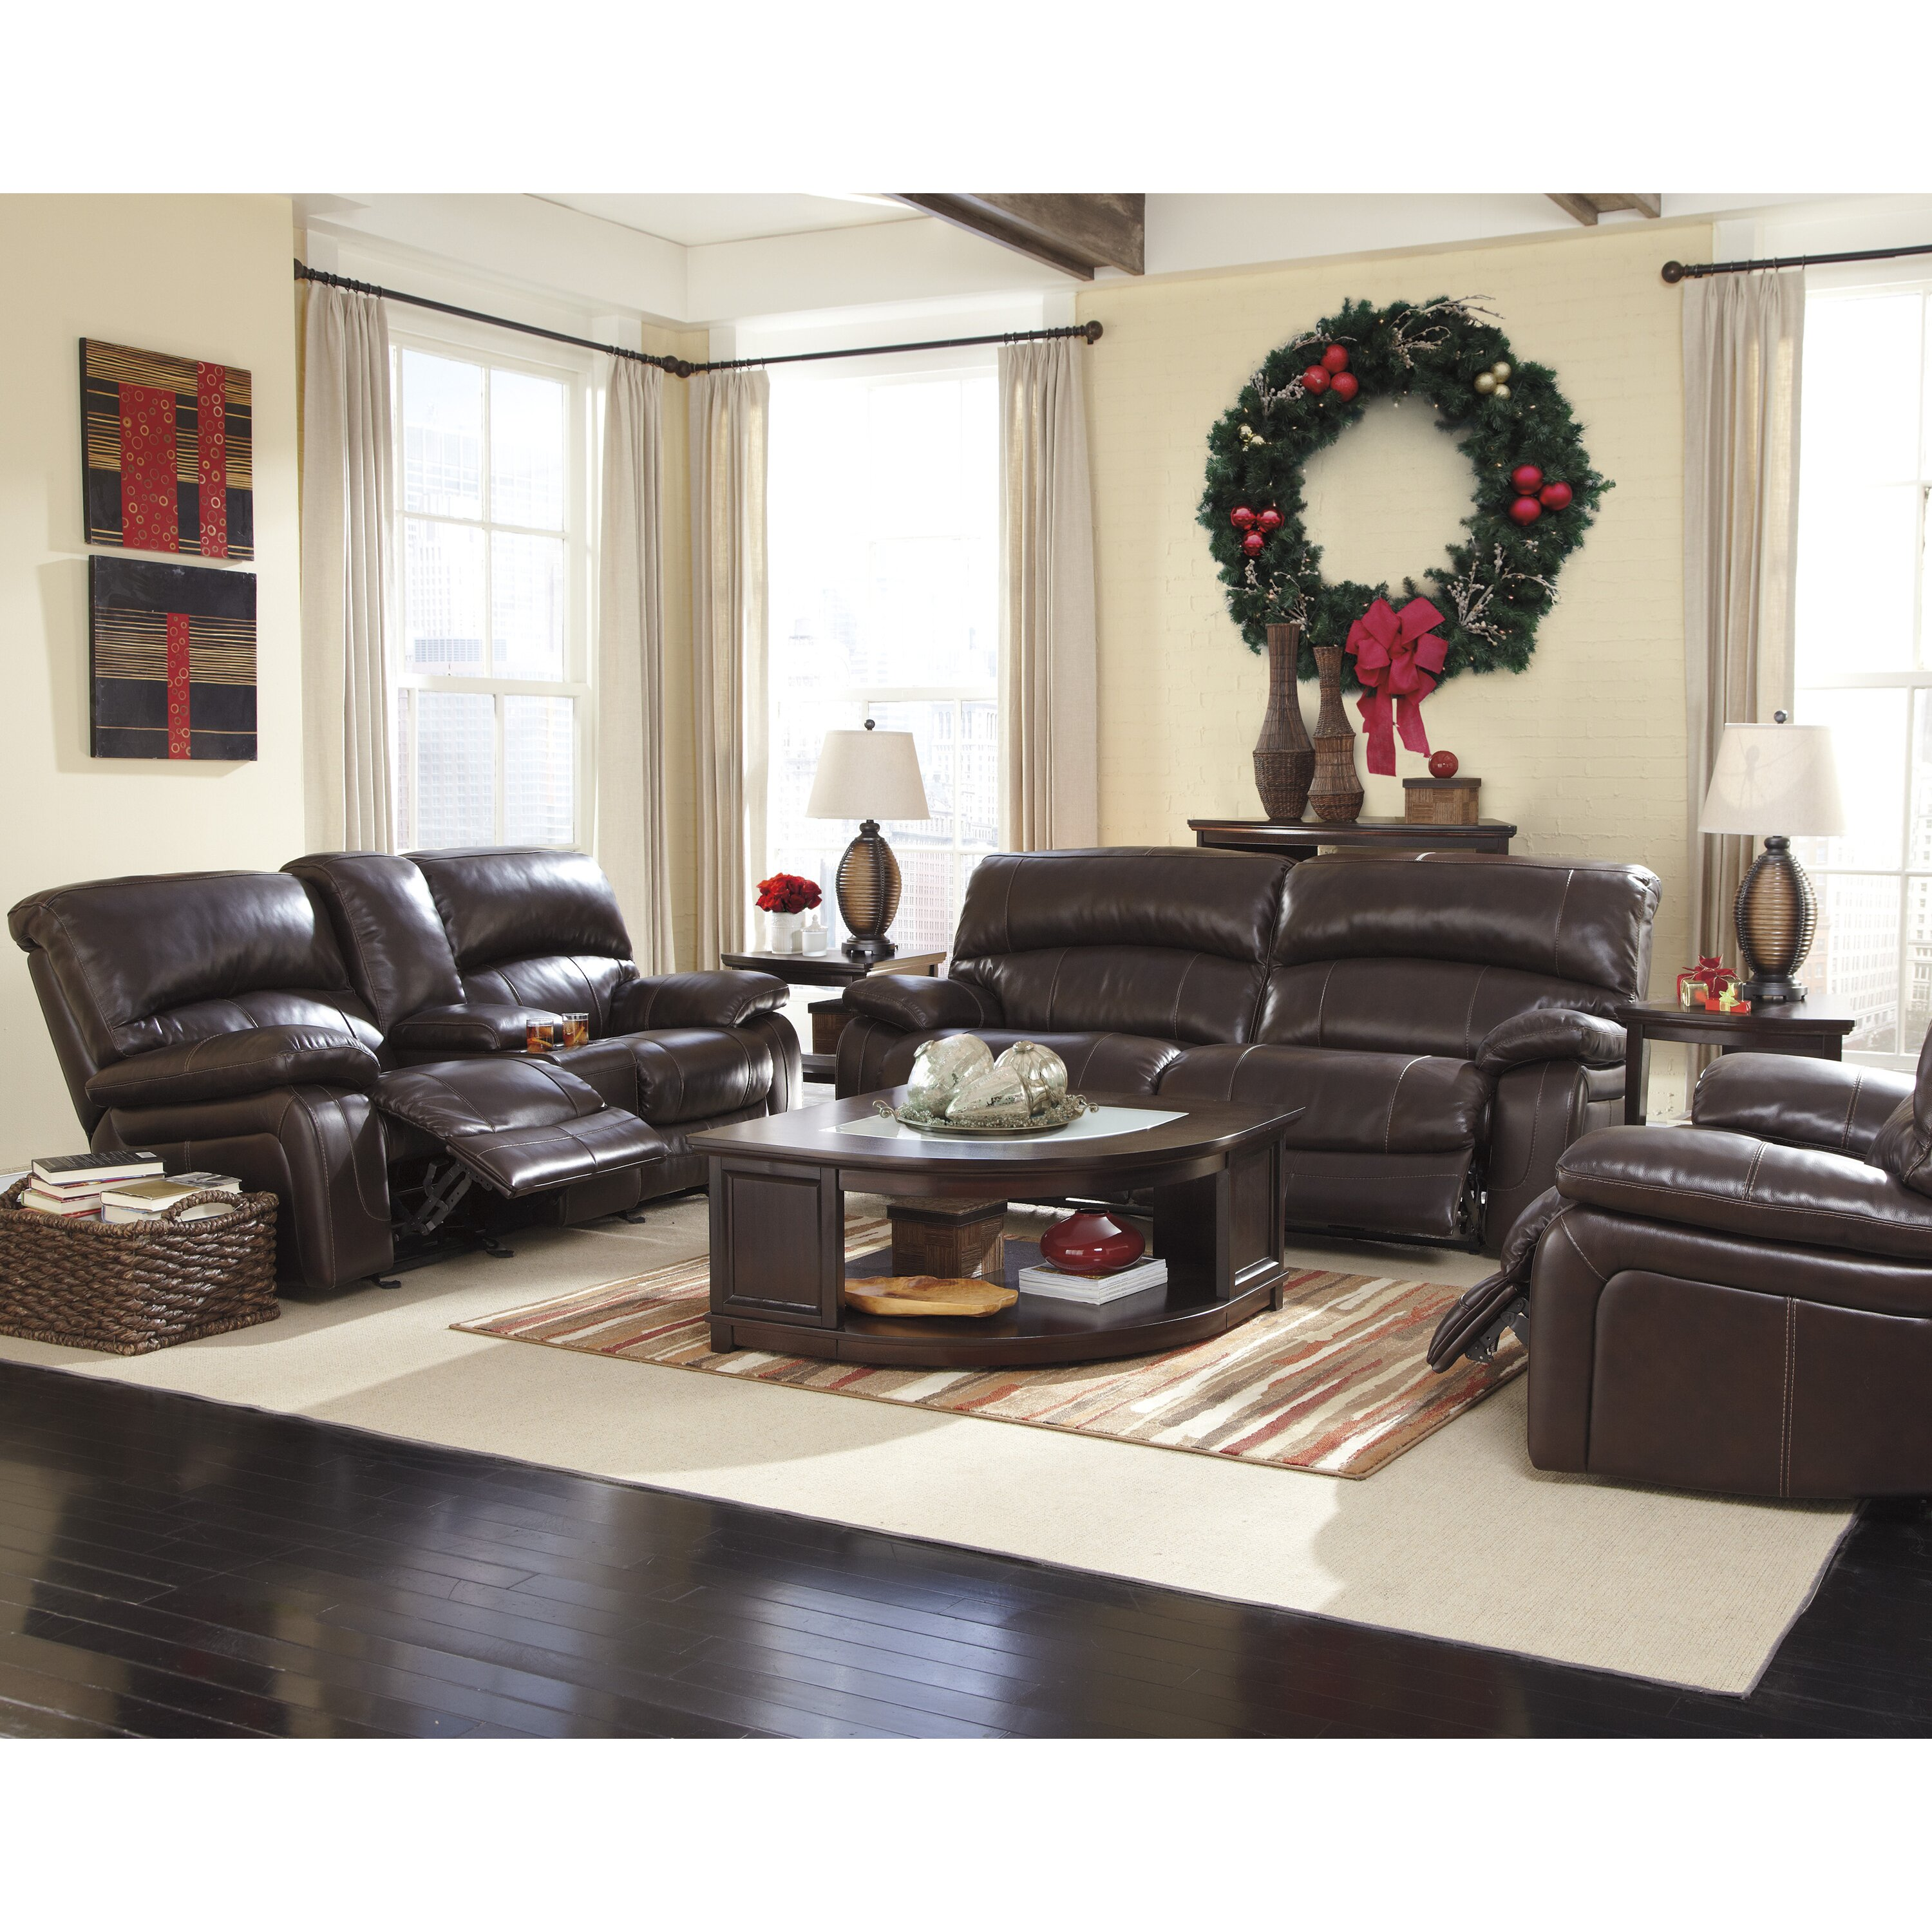 Ashley Signature Collection: Signature Design By Ashley Dormont Living Room Collection